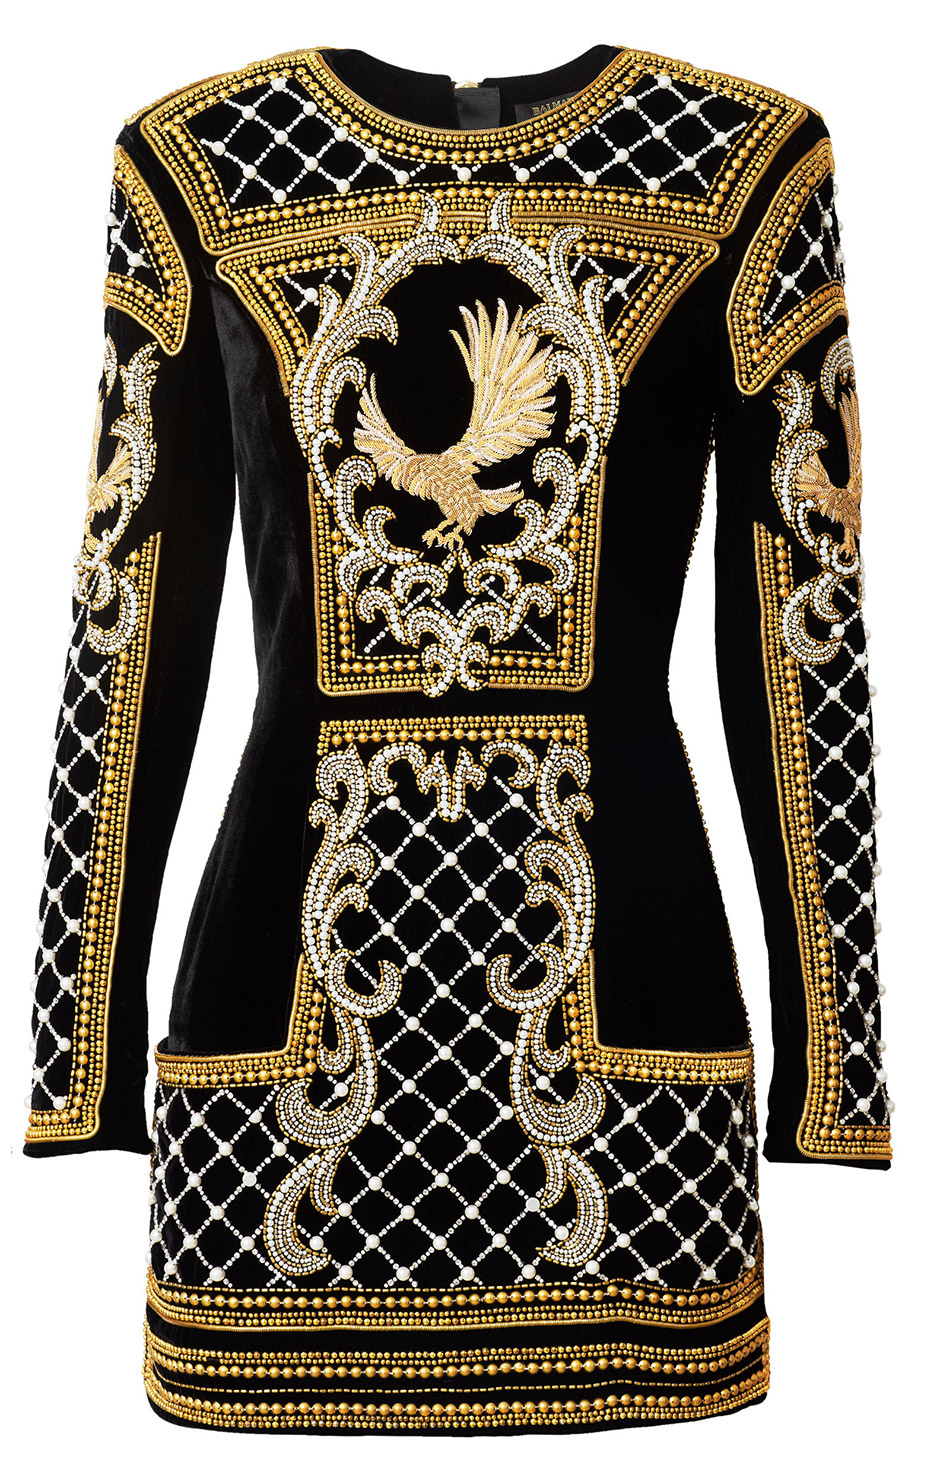 Balmain X H Amp M Women S Collection Prices Nitrolicious Com